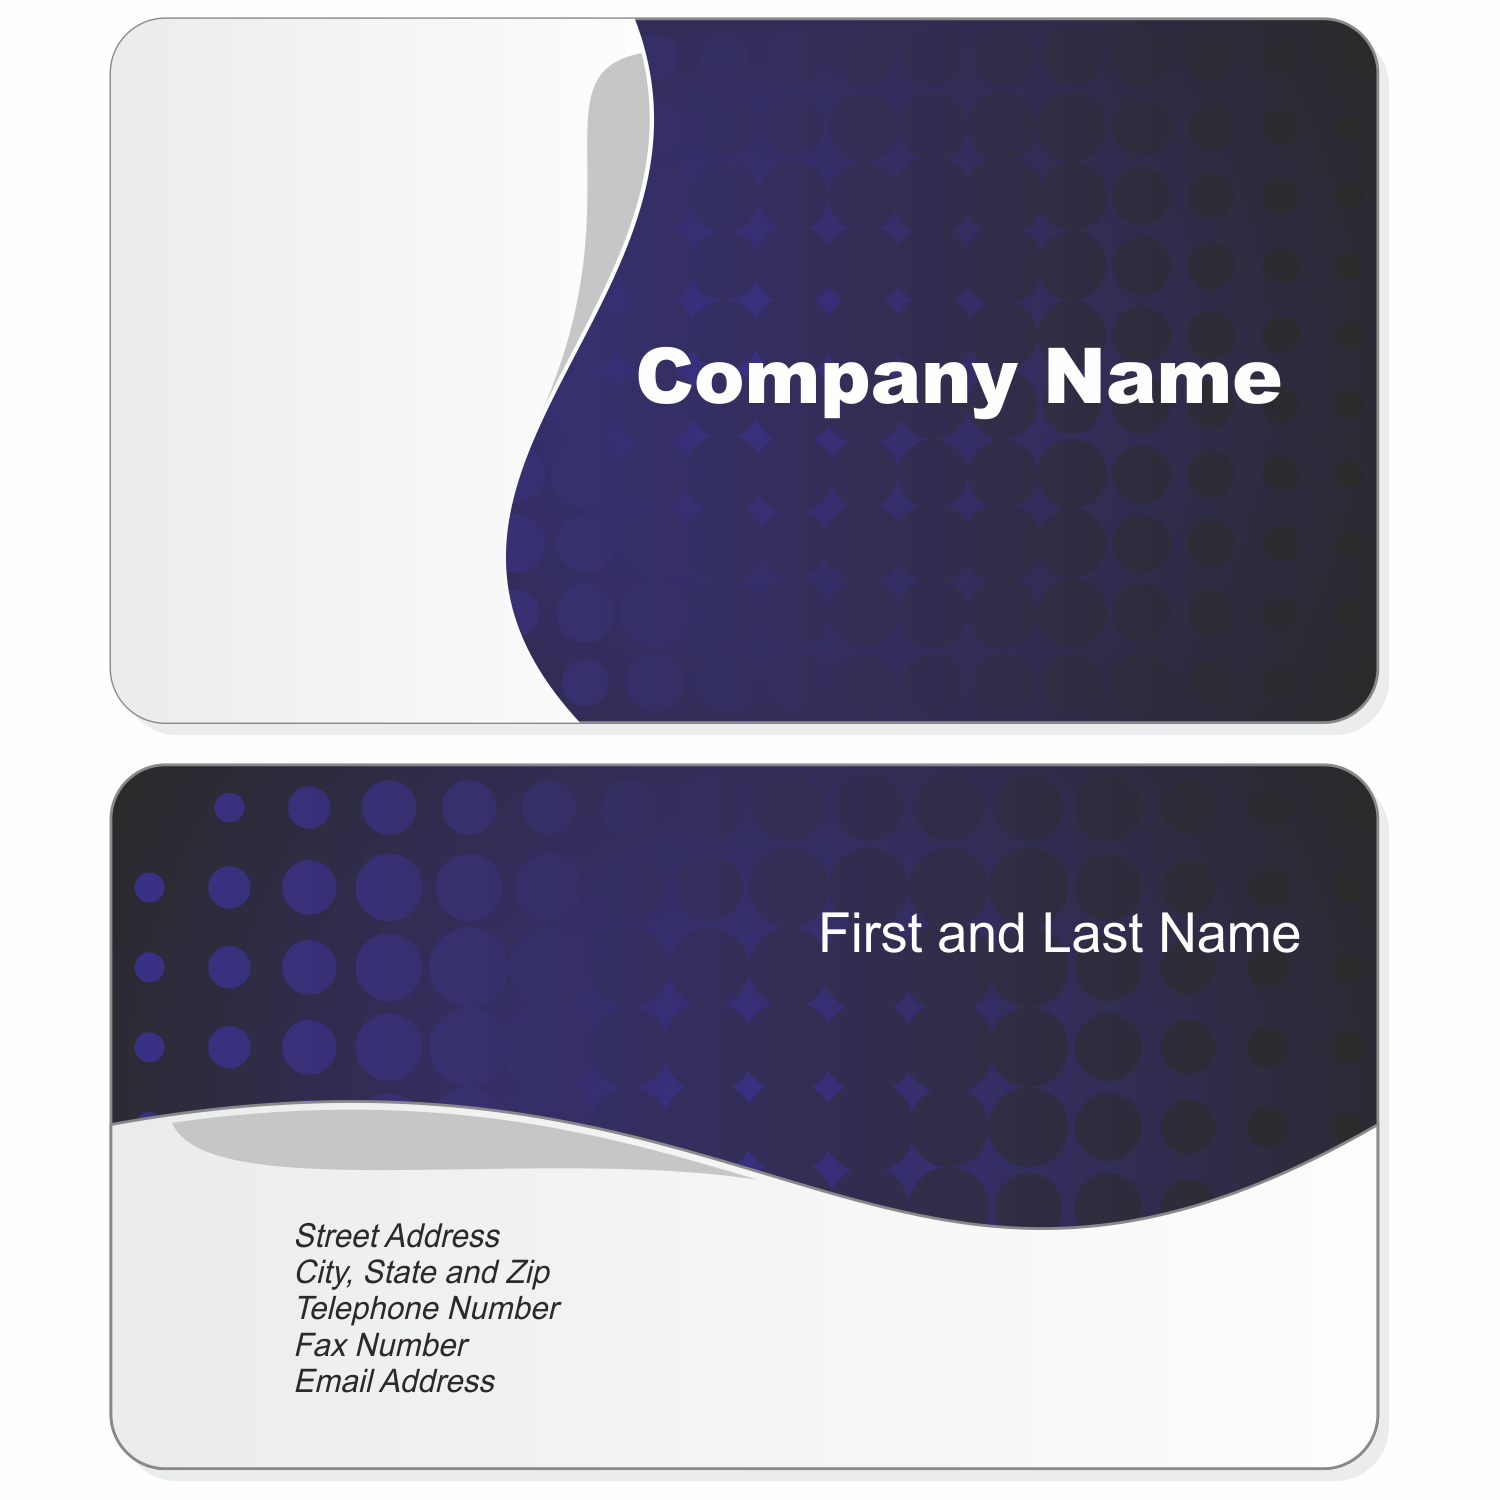 Business Card Design Png Template 4 Png Image